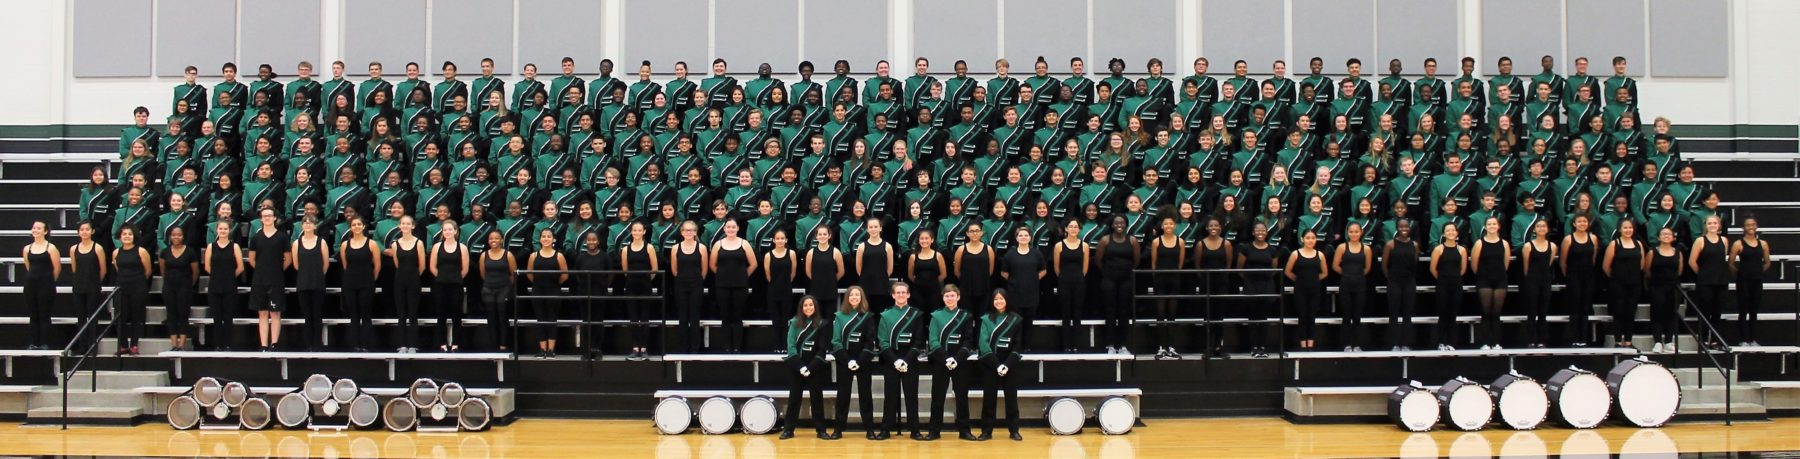 Lake Ridge High School Band